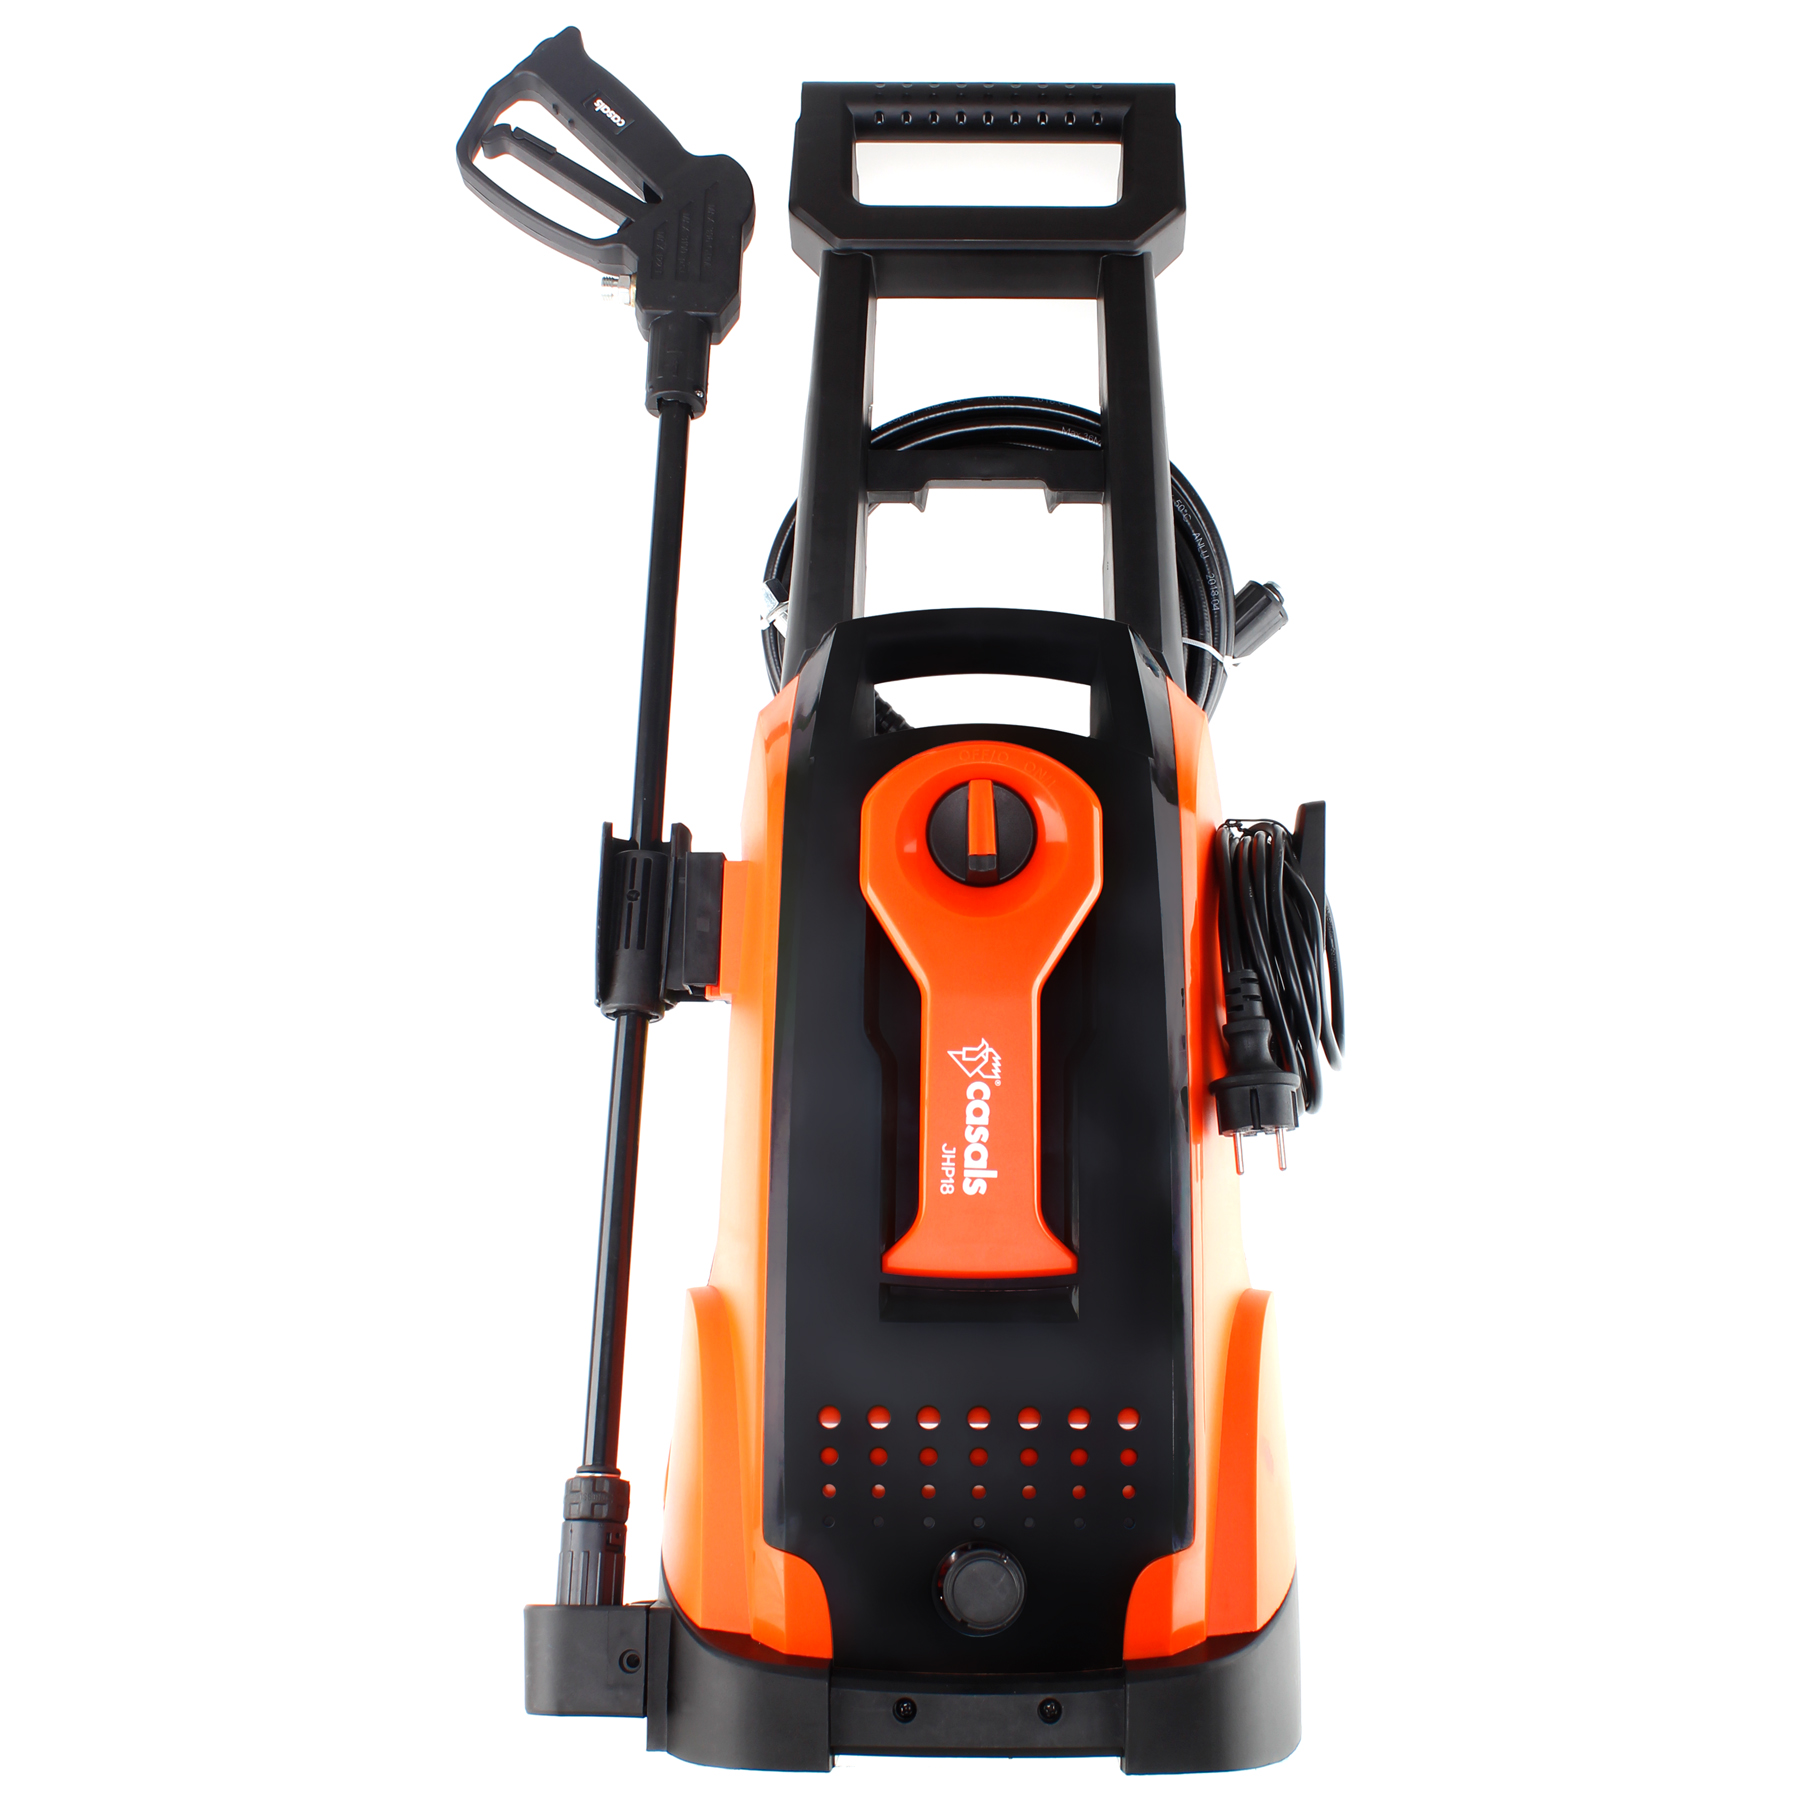 High Pressure Washer With Attachments 135Bar